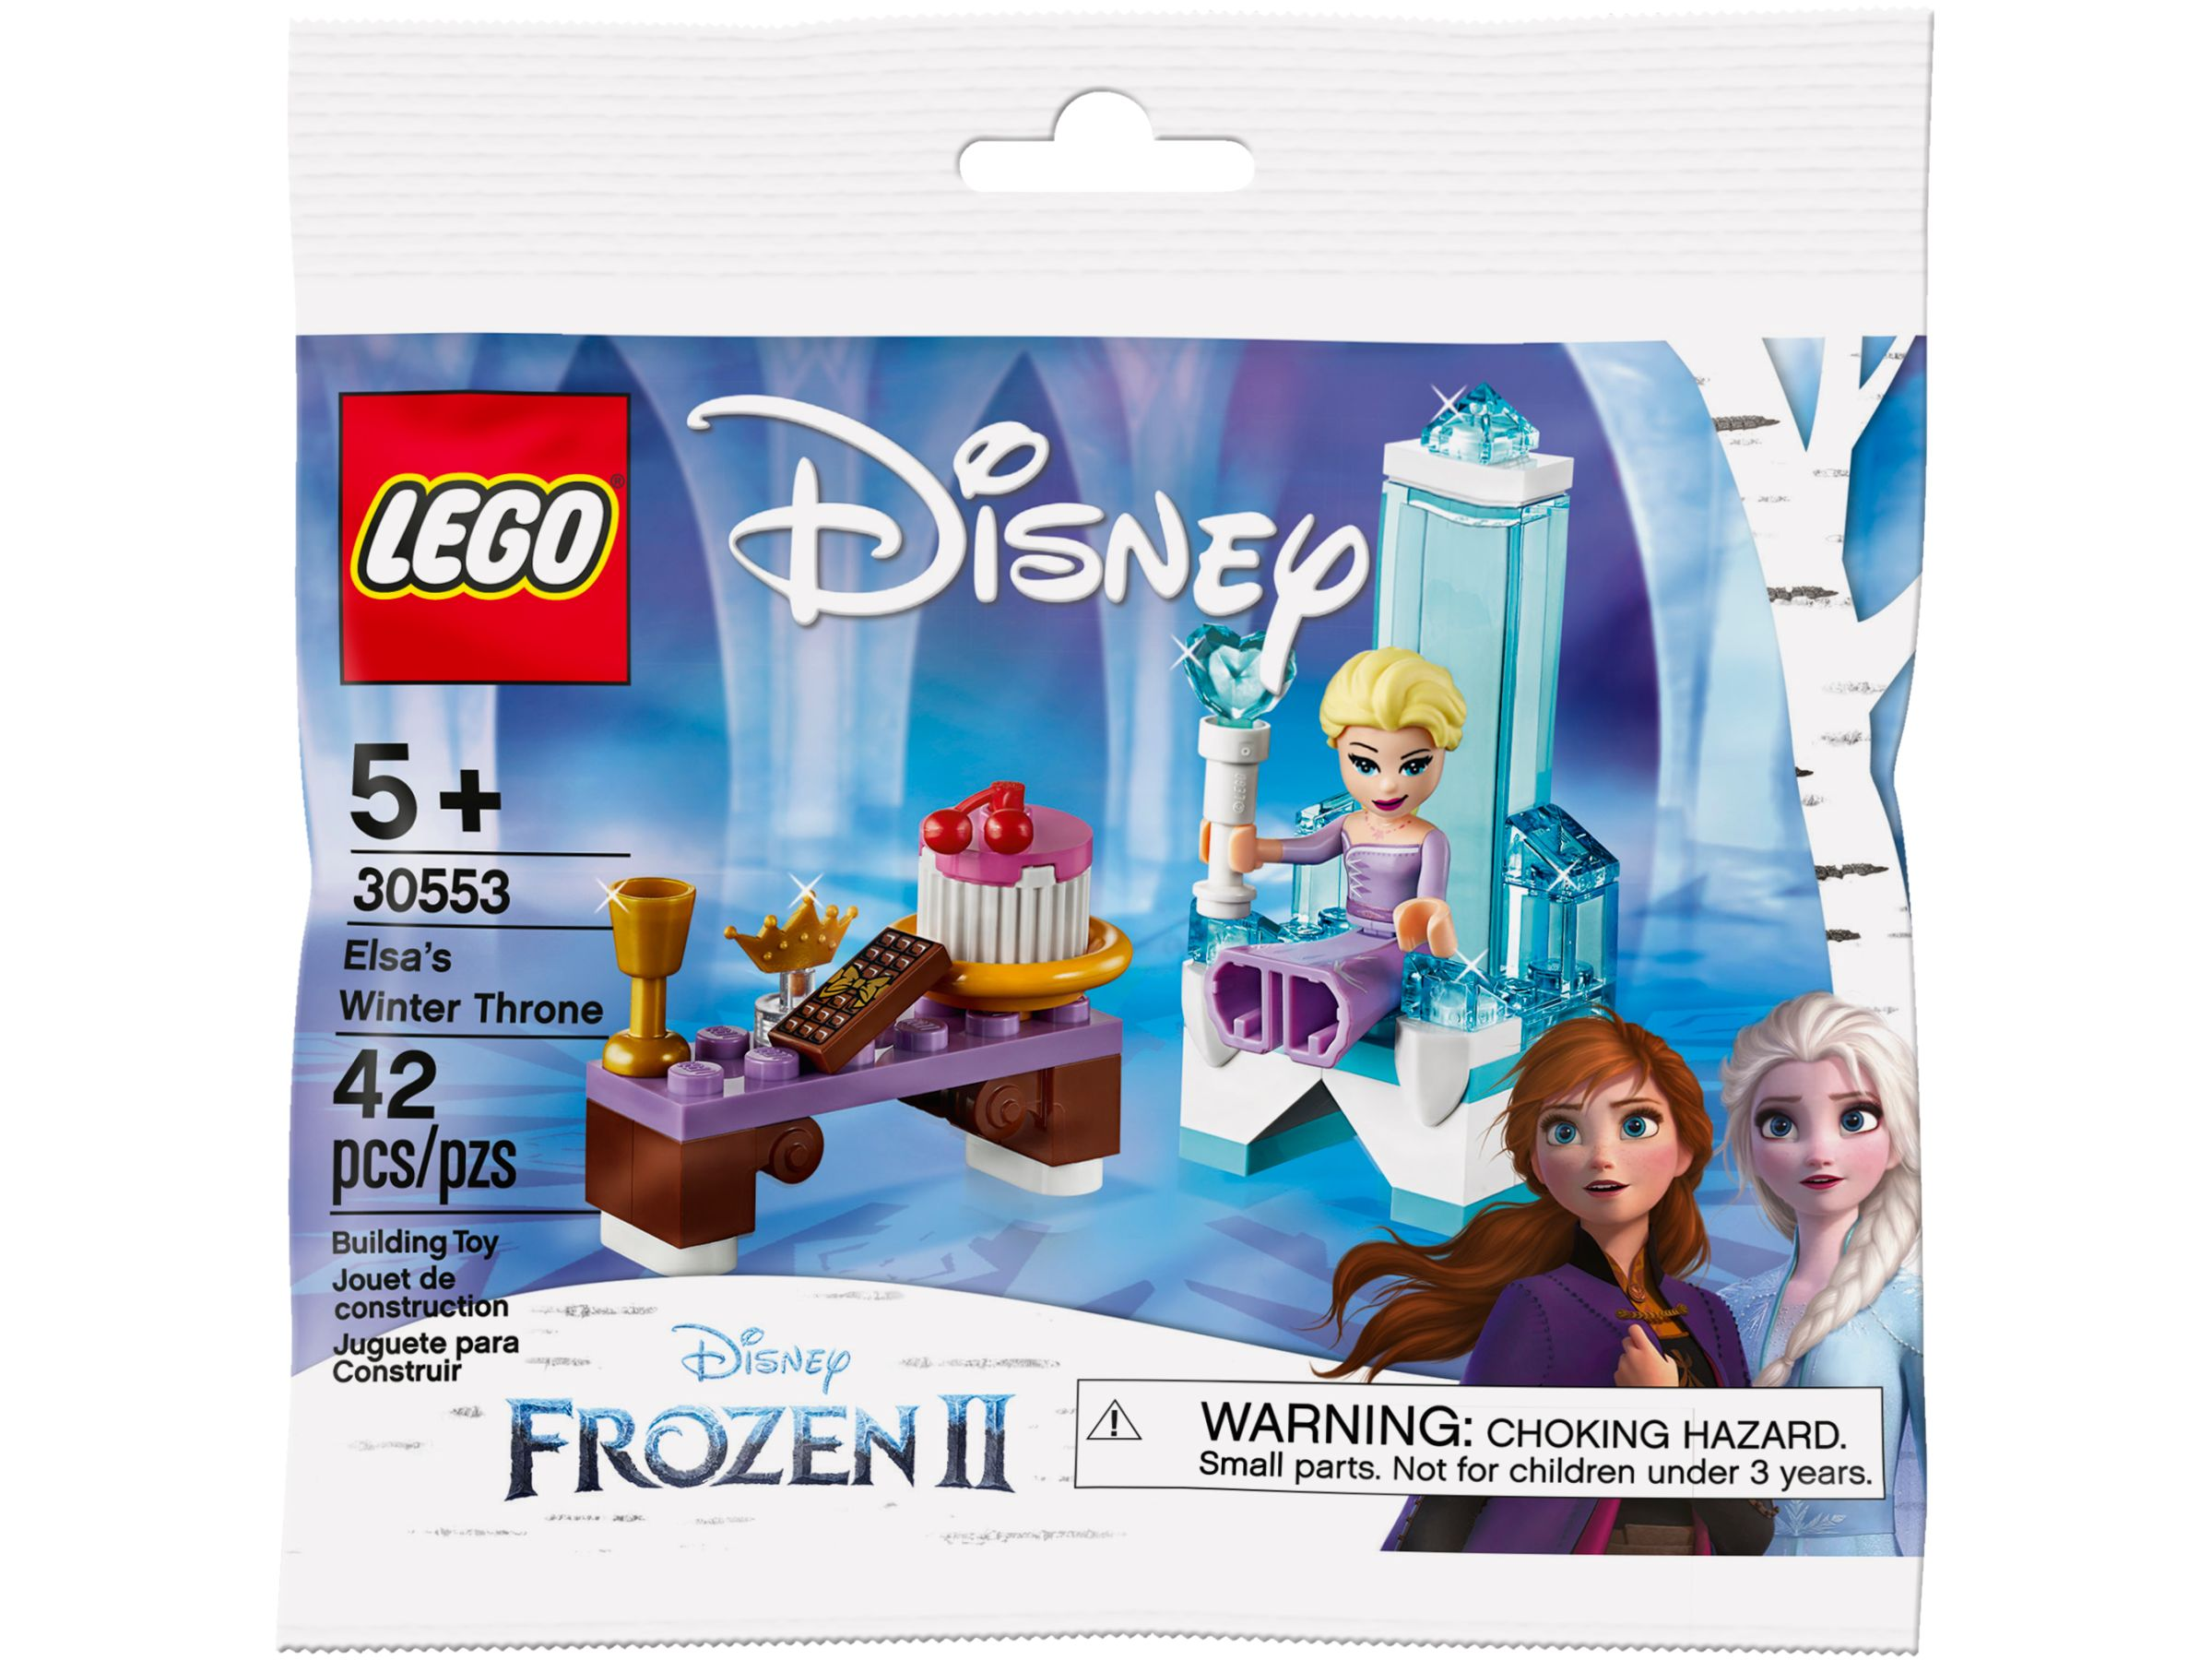 LEGO Disney 30553 Elsa's Winter Throne LEGO_30553_alt2.jpg